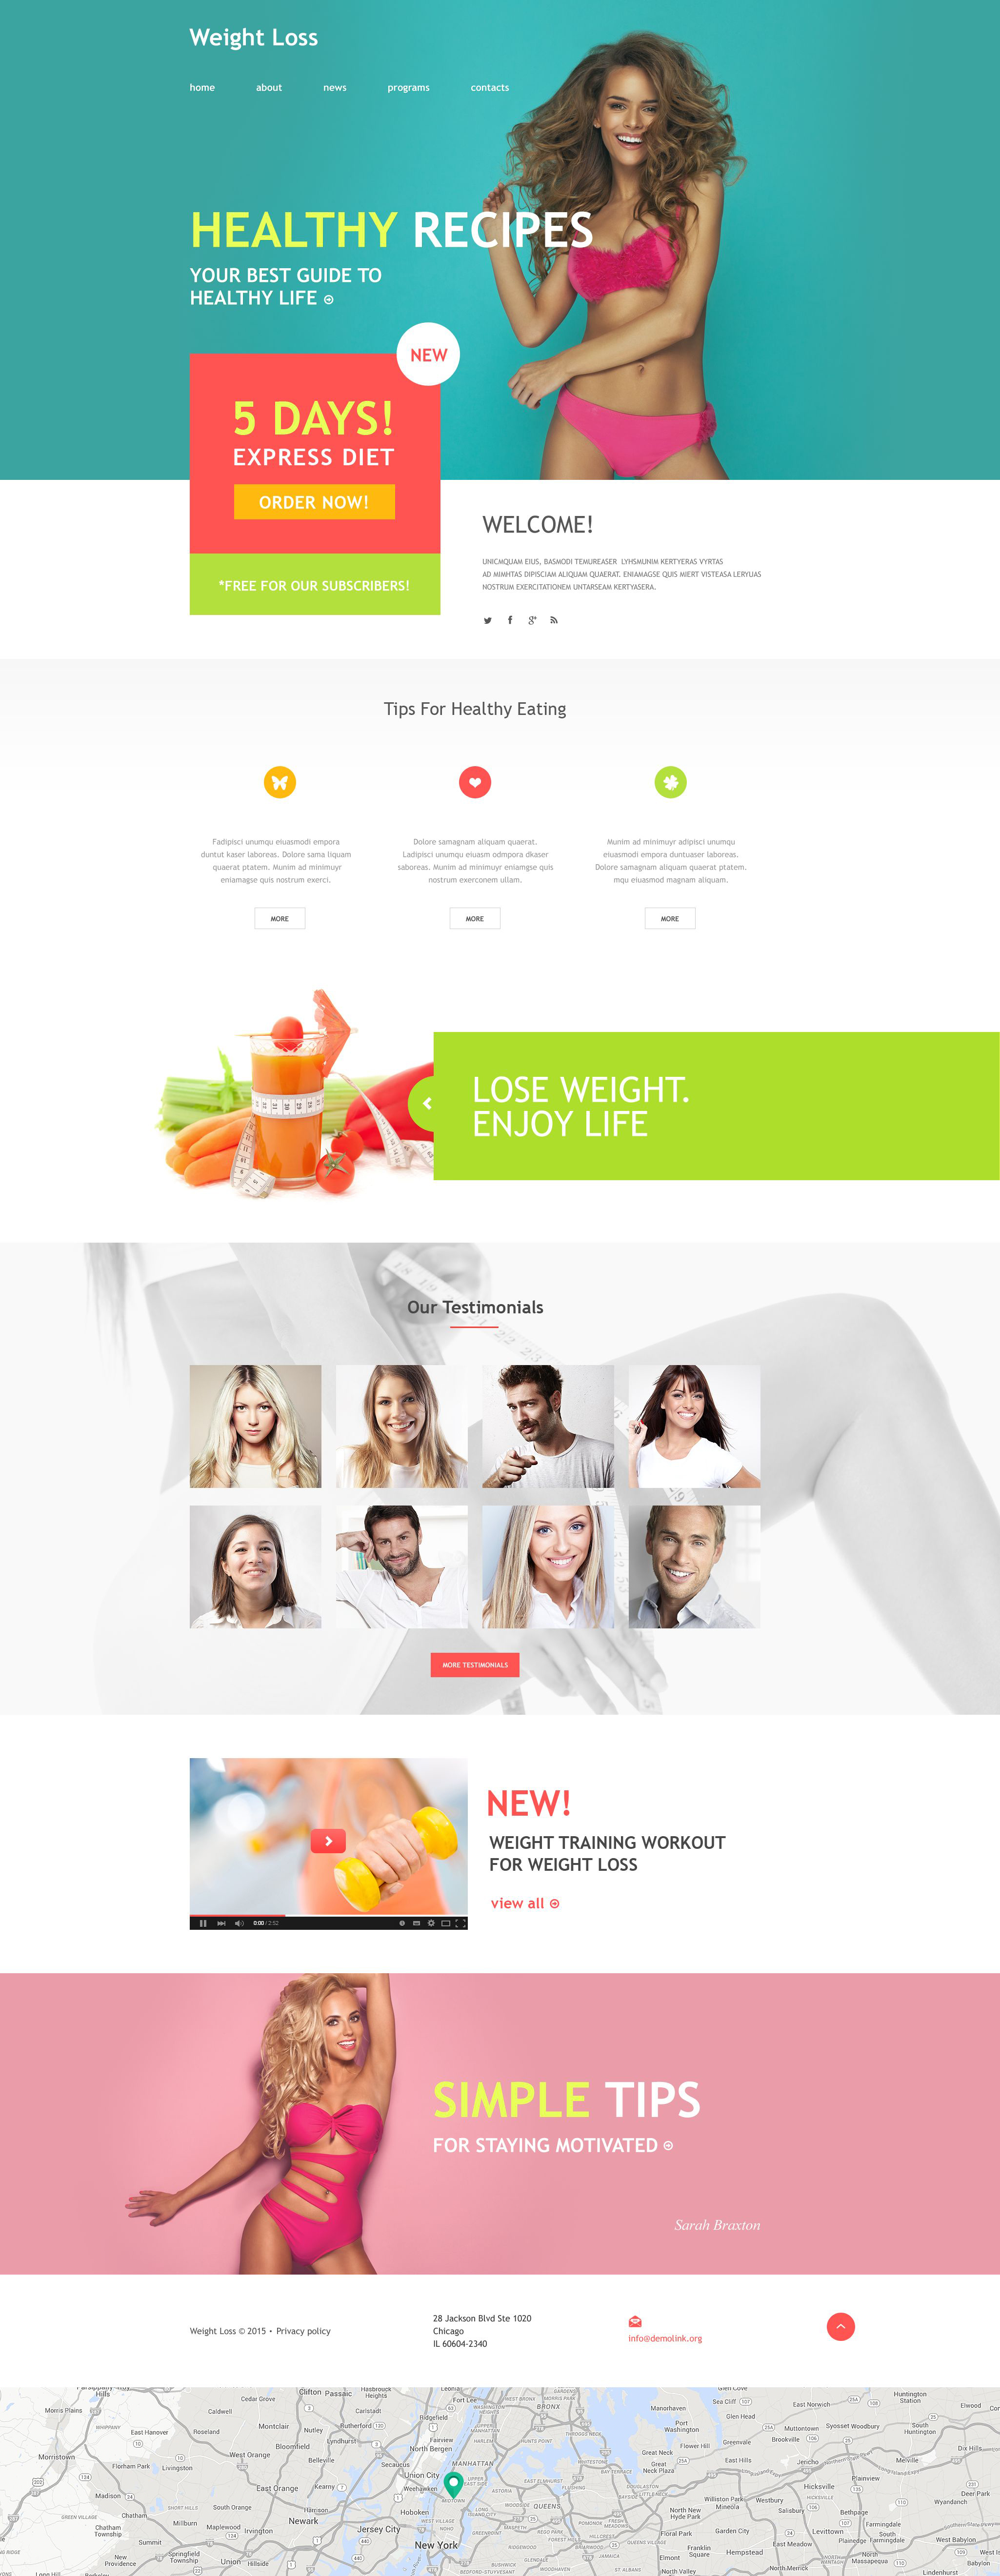 The Weight Loss Muse Templates Design 53842, one of the best Muse templates of its kind (medical), also known as weight loss Muse template, online diet Muse template, site Muse template, invalid Muse template, food Muse template, recipe Muse template, service Muse template, planning Muse template, product Muse template, consulting Muse template, health care Muse template, medicine Muse template, doctor Muse template, patient Muse template, tablet Muse template, drug Muse template, biotechnology Muse template, protein Muse template, therapeutic Muse template, medical nutrition Muse template, prescription Muse template, vitamin Muse template, product Muse template, fruit Muse template, drink Muse template, order Muse template, energy Muse template, life Muse template, training and related with weight loss, online diet, site, invalid, food, recipe, service, planning, product, consulting, health care, medicine, doctor, patient, tablet, drug, biotechnology, protein, therapeutic, medical nutrition, prescription, vitamin, product, fruit, drink, order, energy, life, training, etc.